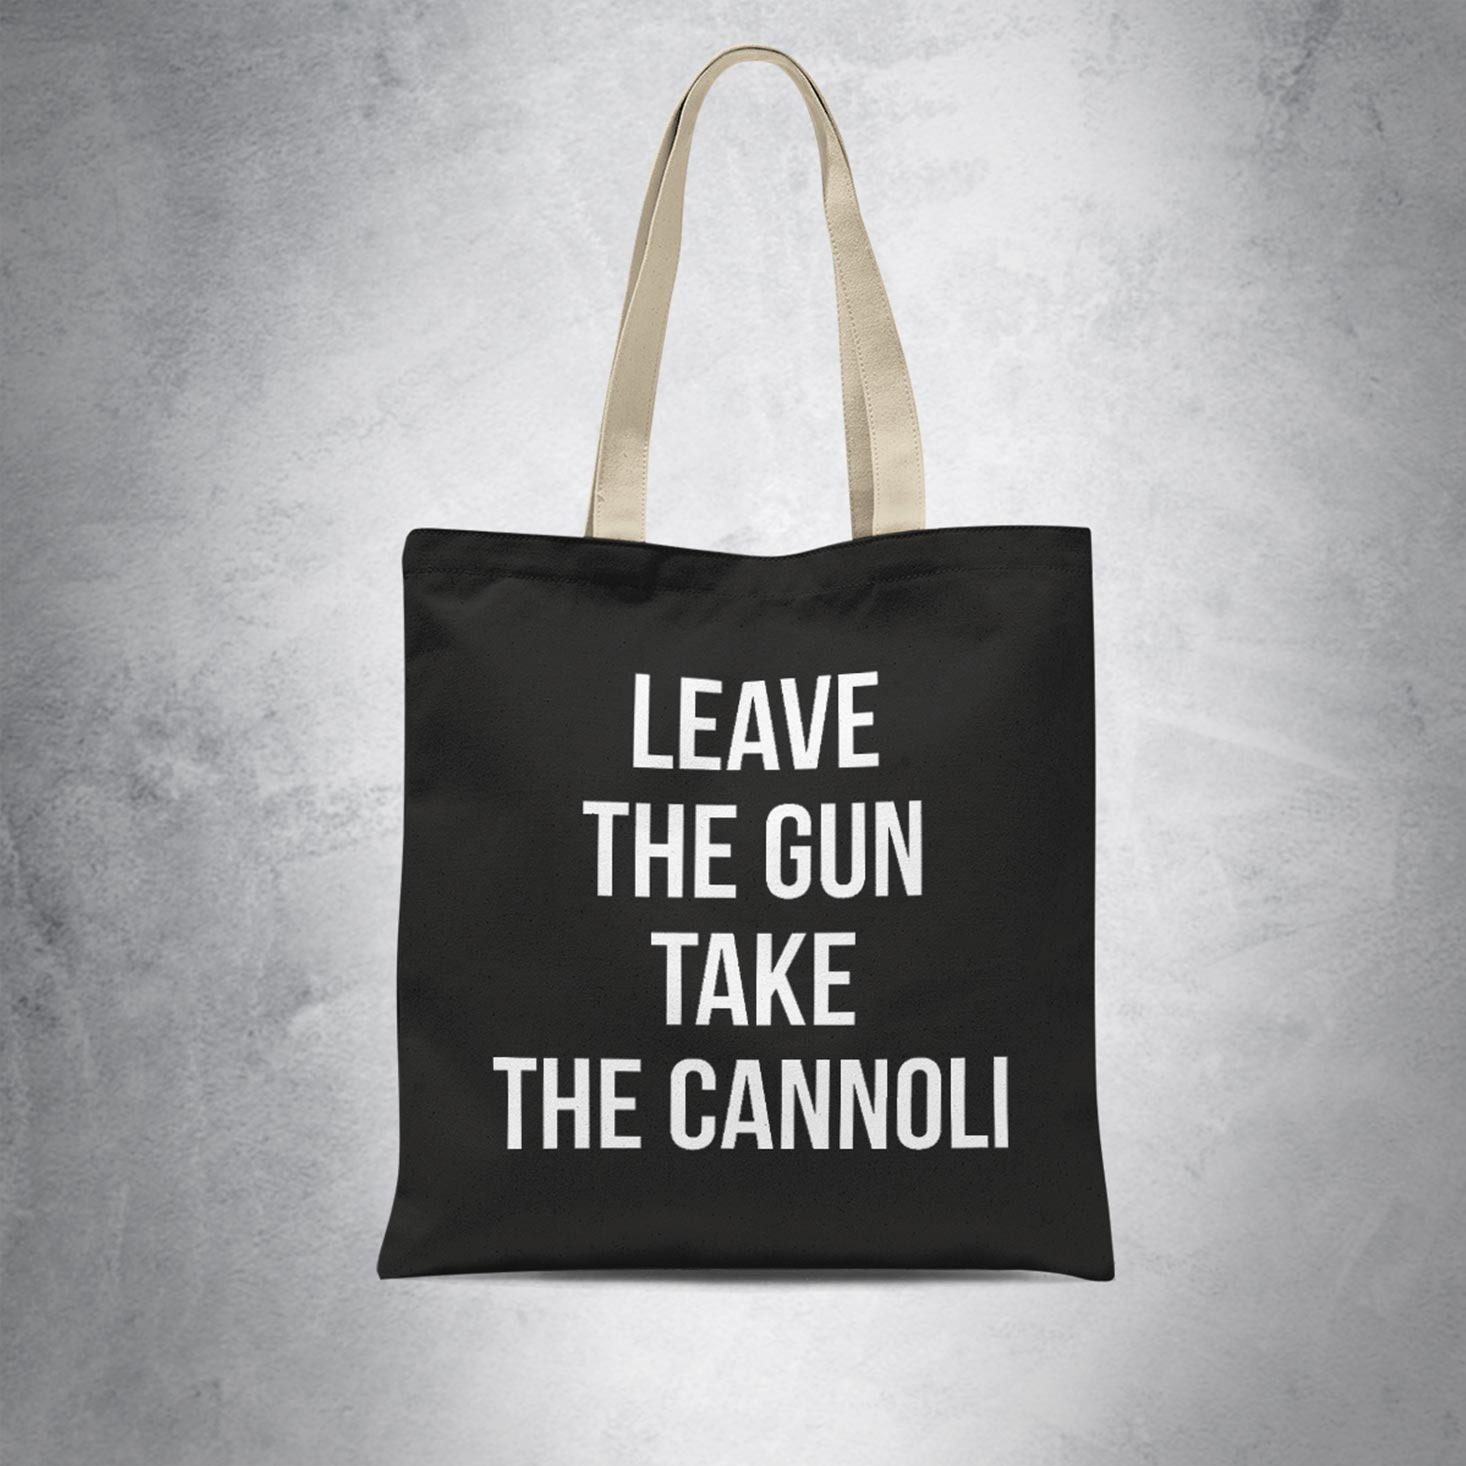 THE GODFATHER - Leave the Gun Take the Cannoli